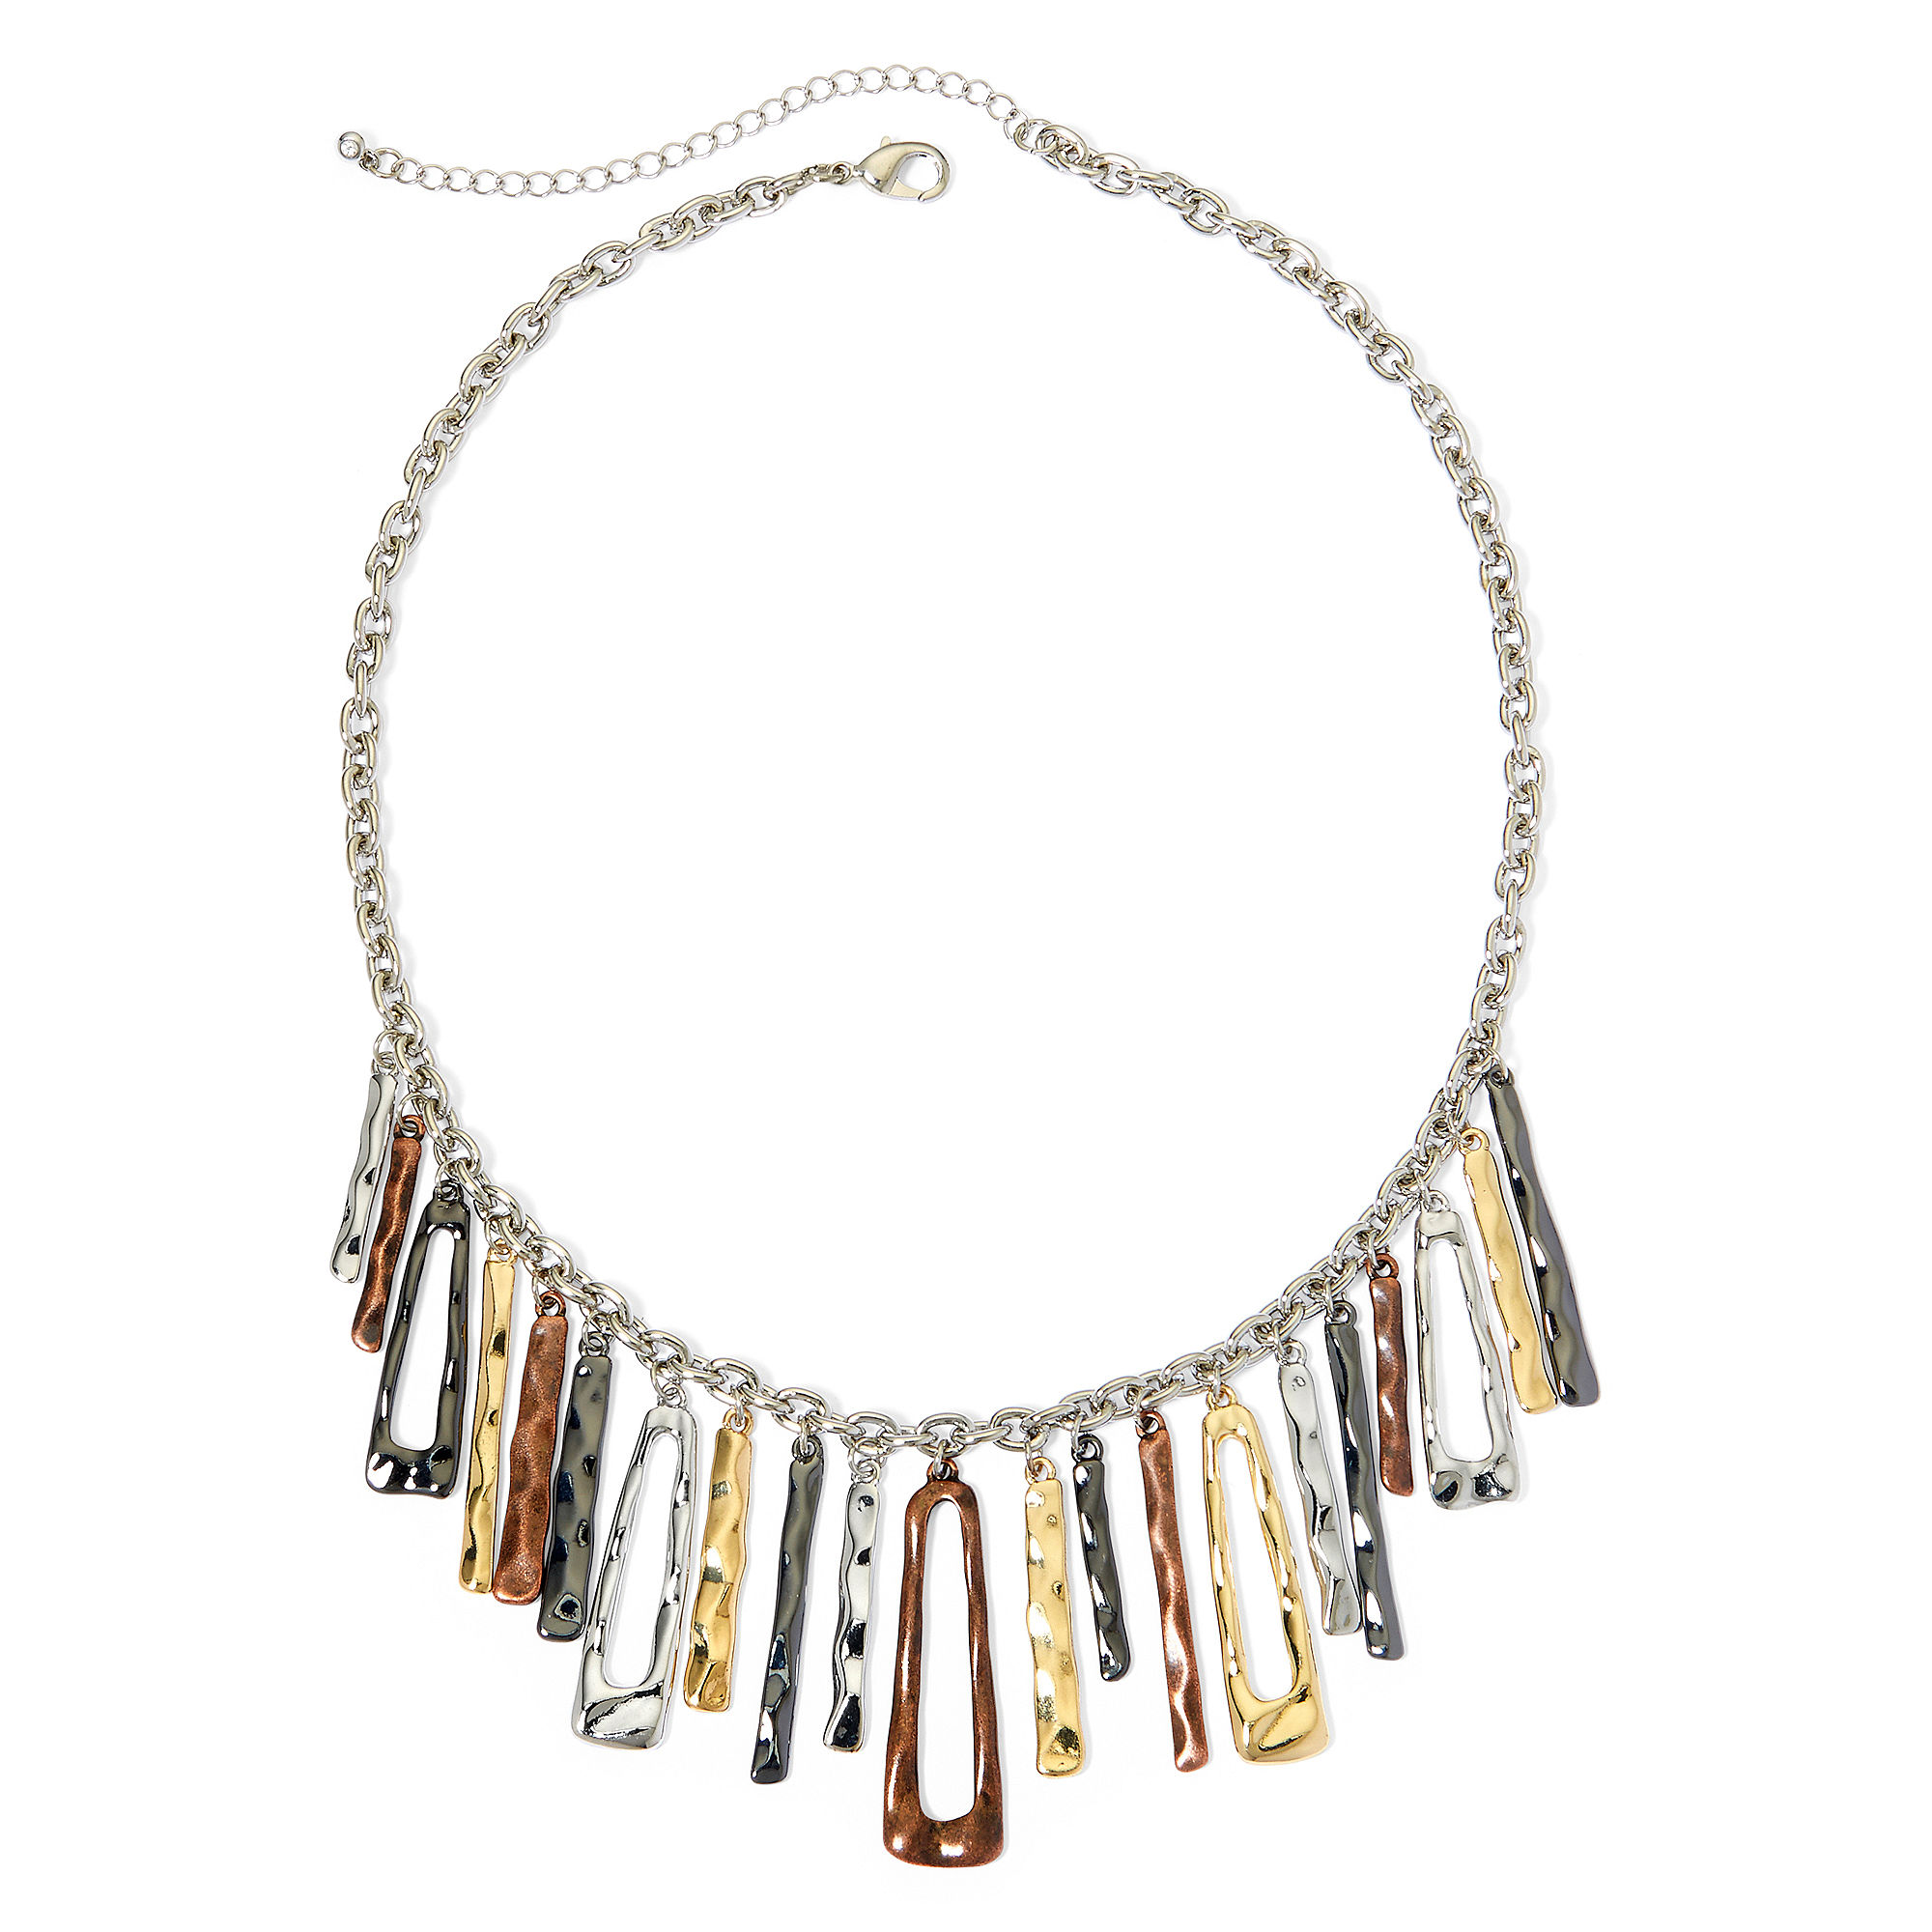 Bold Elements™ Hammered Charm Necklace